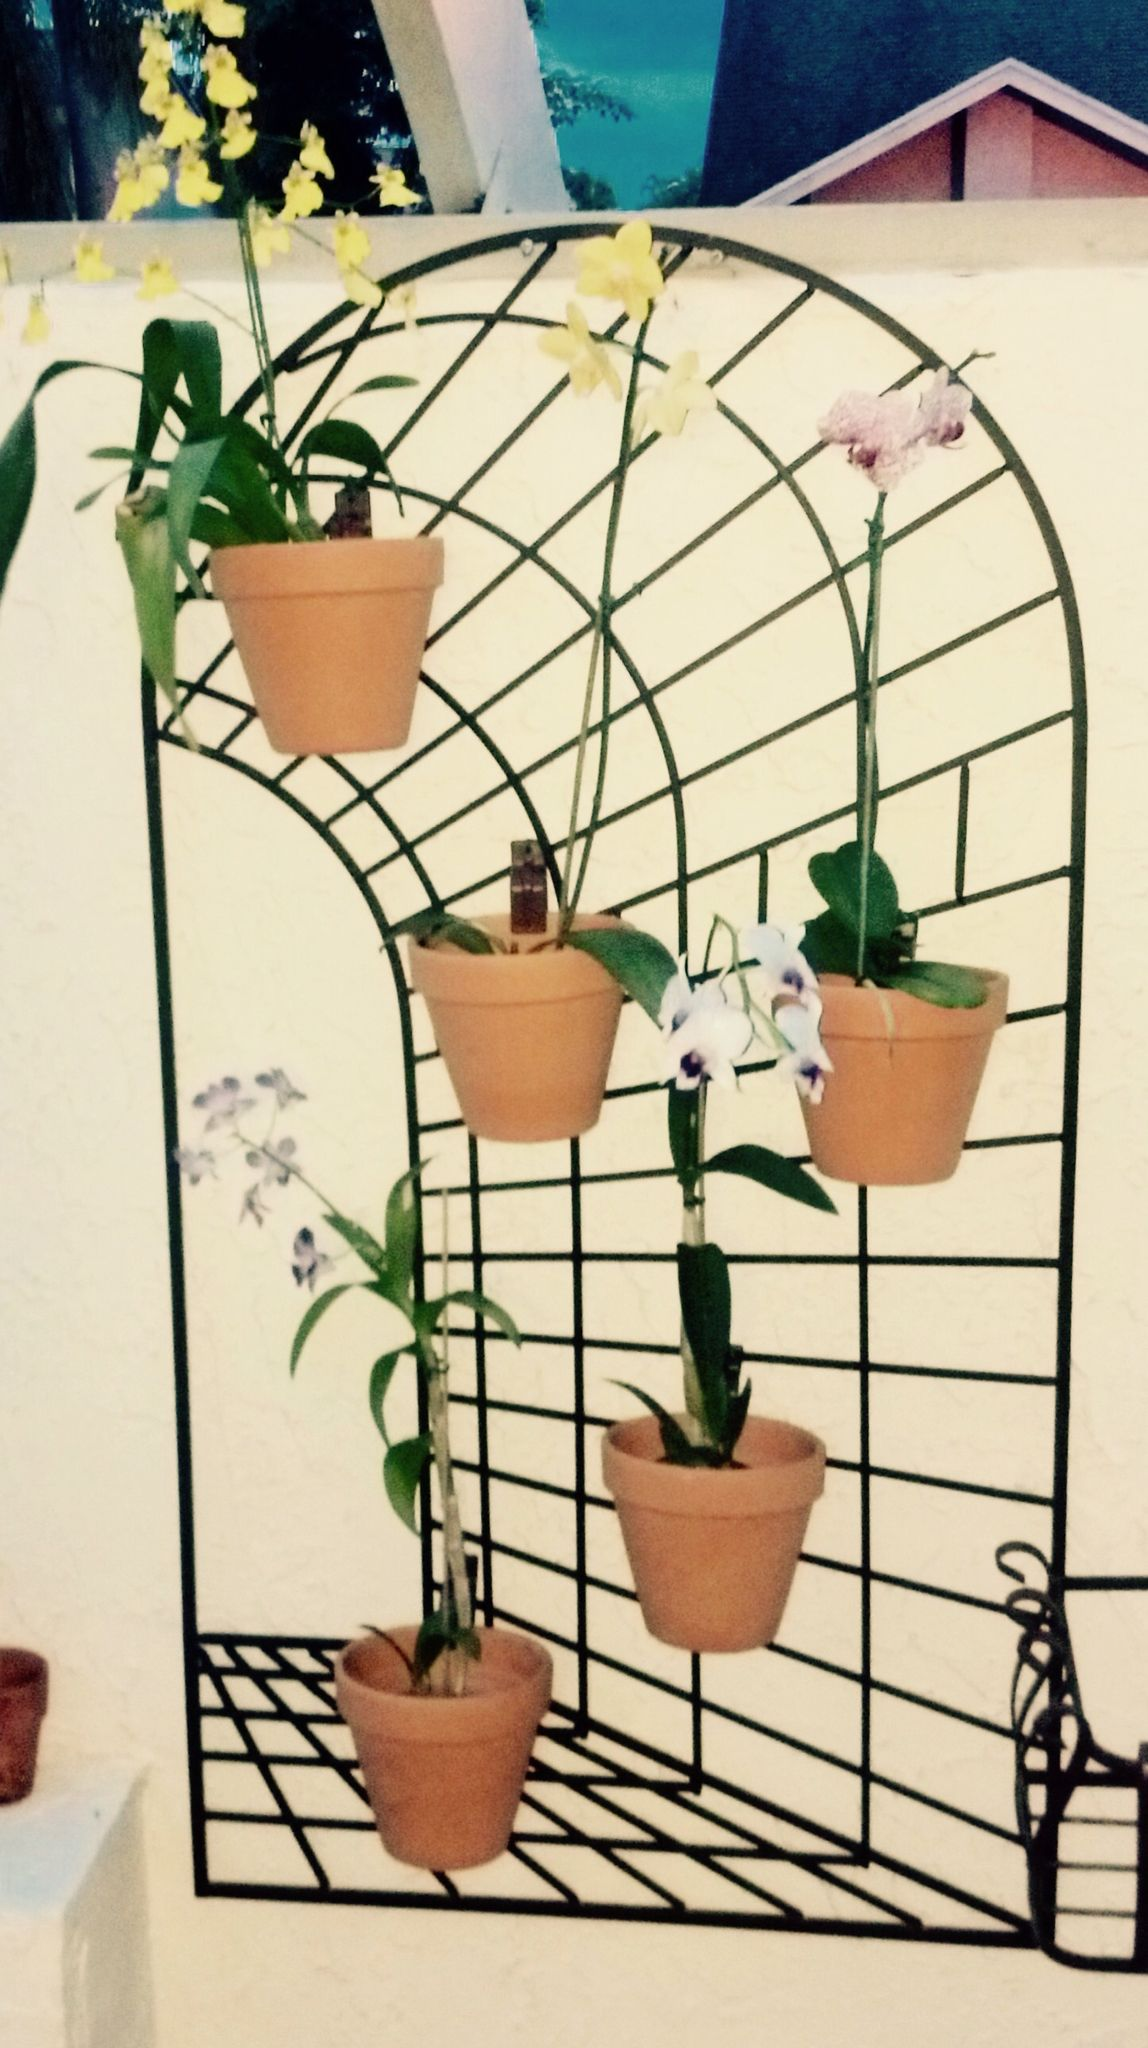 Diy Orchids Secured To A Wrought Iron Trellis With Hangapots Or Is The Metal Backdrop Actually Container Garden Design Flower Pot Hanger Vertical Garden Indoor